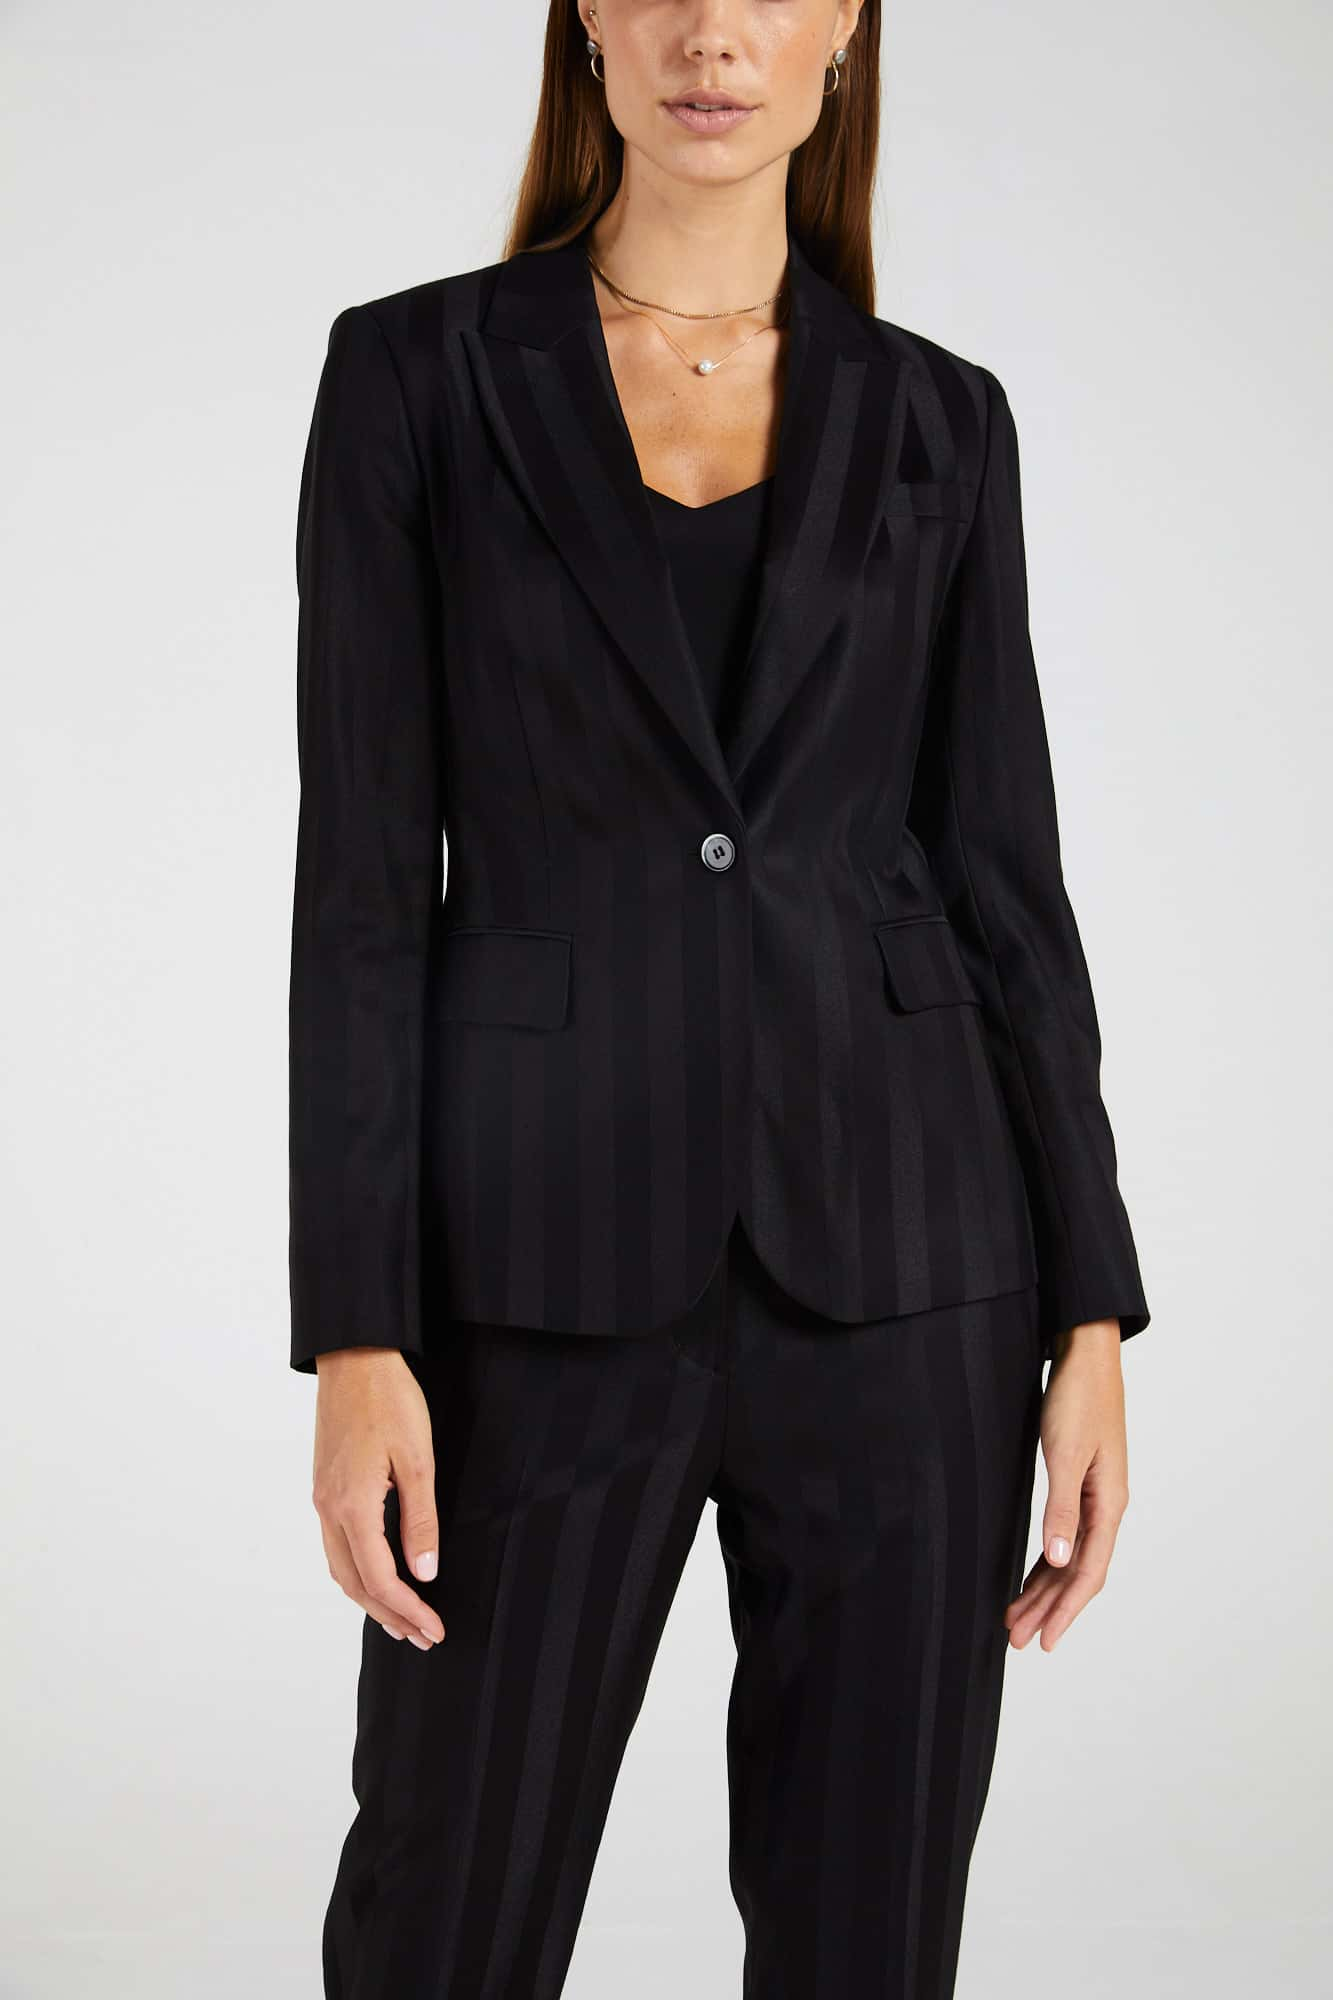 InStitchu Collection The Watts Thick Black Pinstripe Jacket